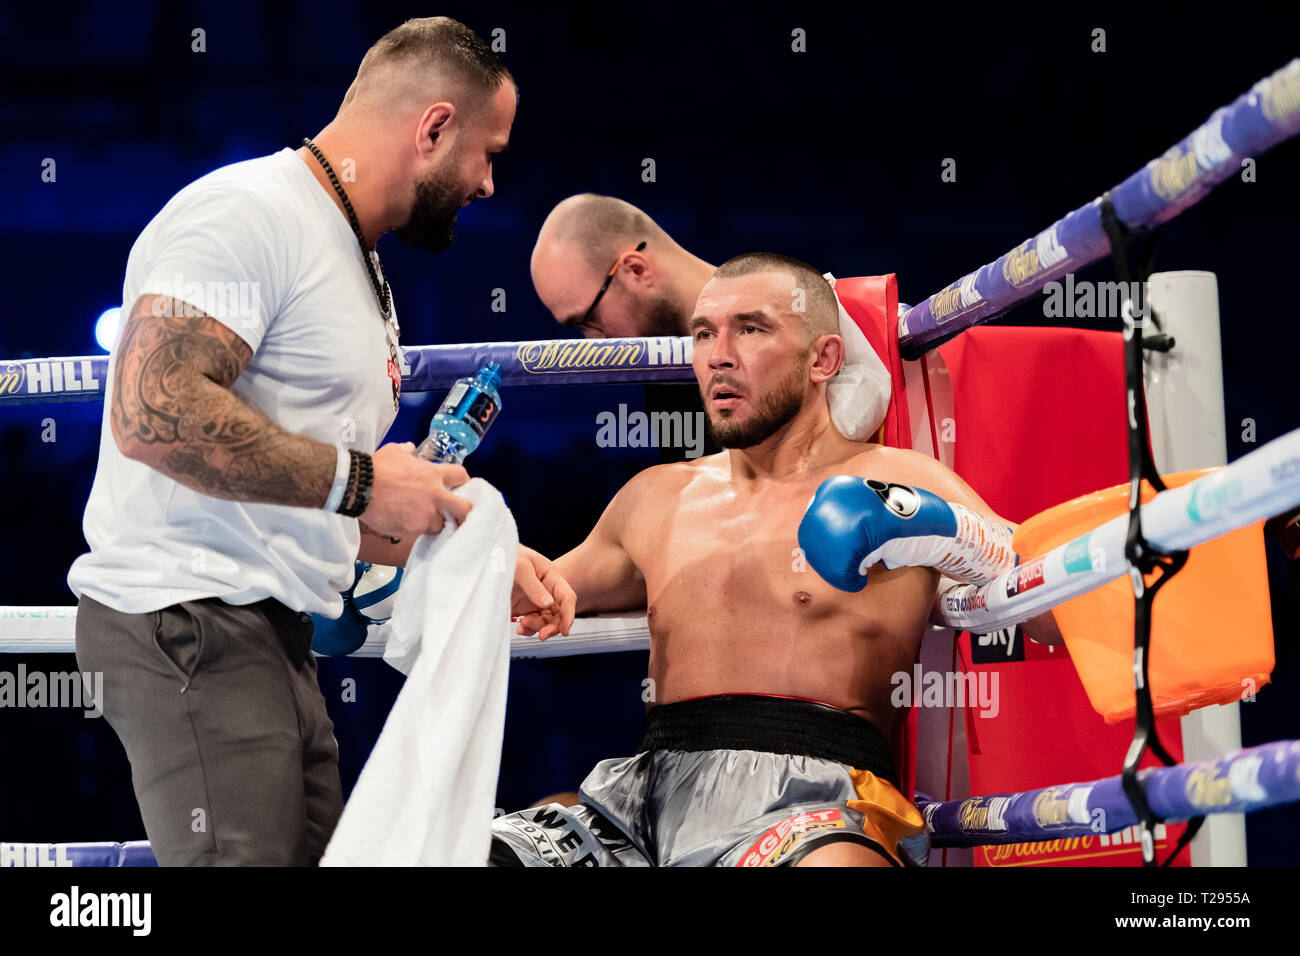 Liverpool, UK. 30th March 2019. Craig Clover vs Vaclav Pejsar - Cruiserweight Contest during Liam Smith vs. Sam Eggington - WBC Silver Super-Welterweight Championship at M&S Bank Arena on Saturday, 30 March 2019. LIVERPOOL, ENGLAND. (Editorial use only, license required for commercial use. No use in betting, games or a single club/league/player publications.) Credit: Taka G Wu/Alamy News - Stock Image